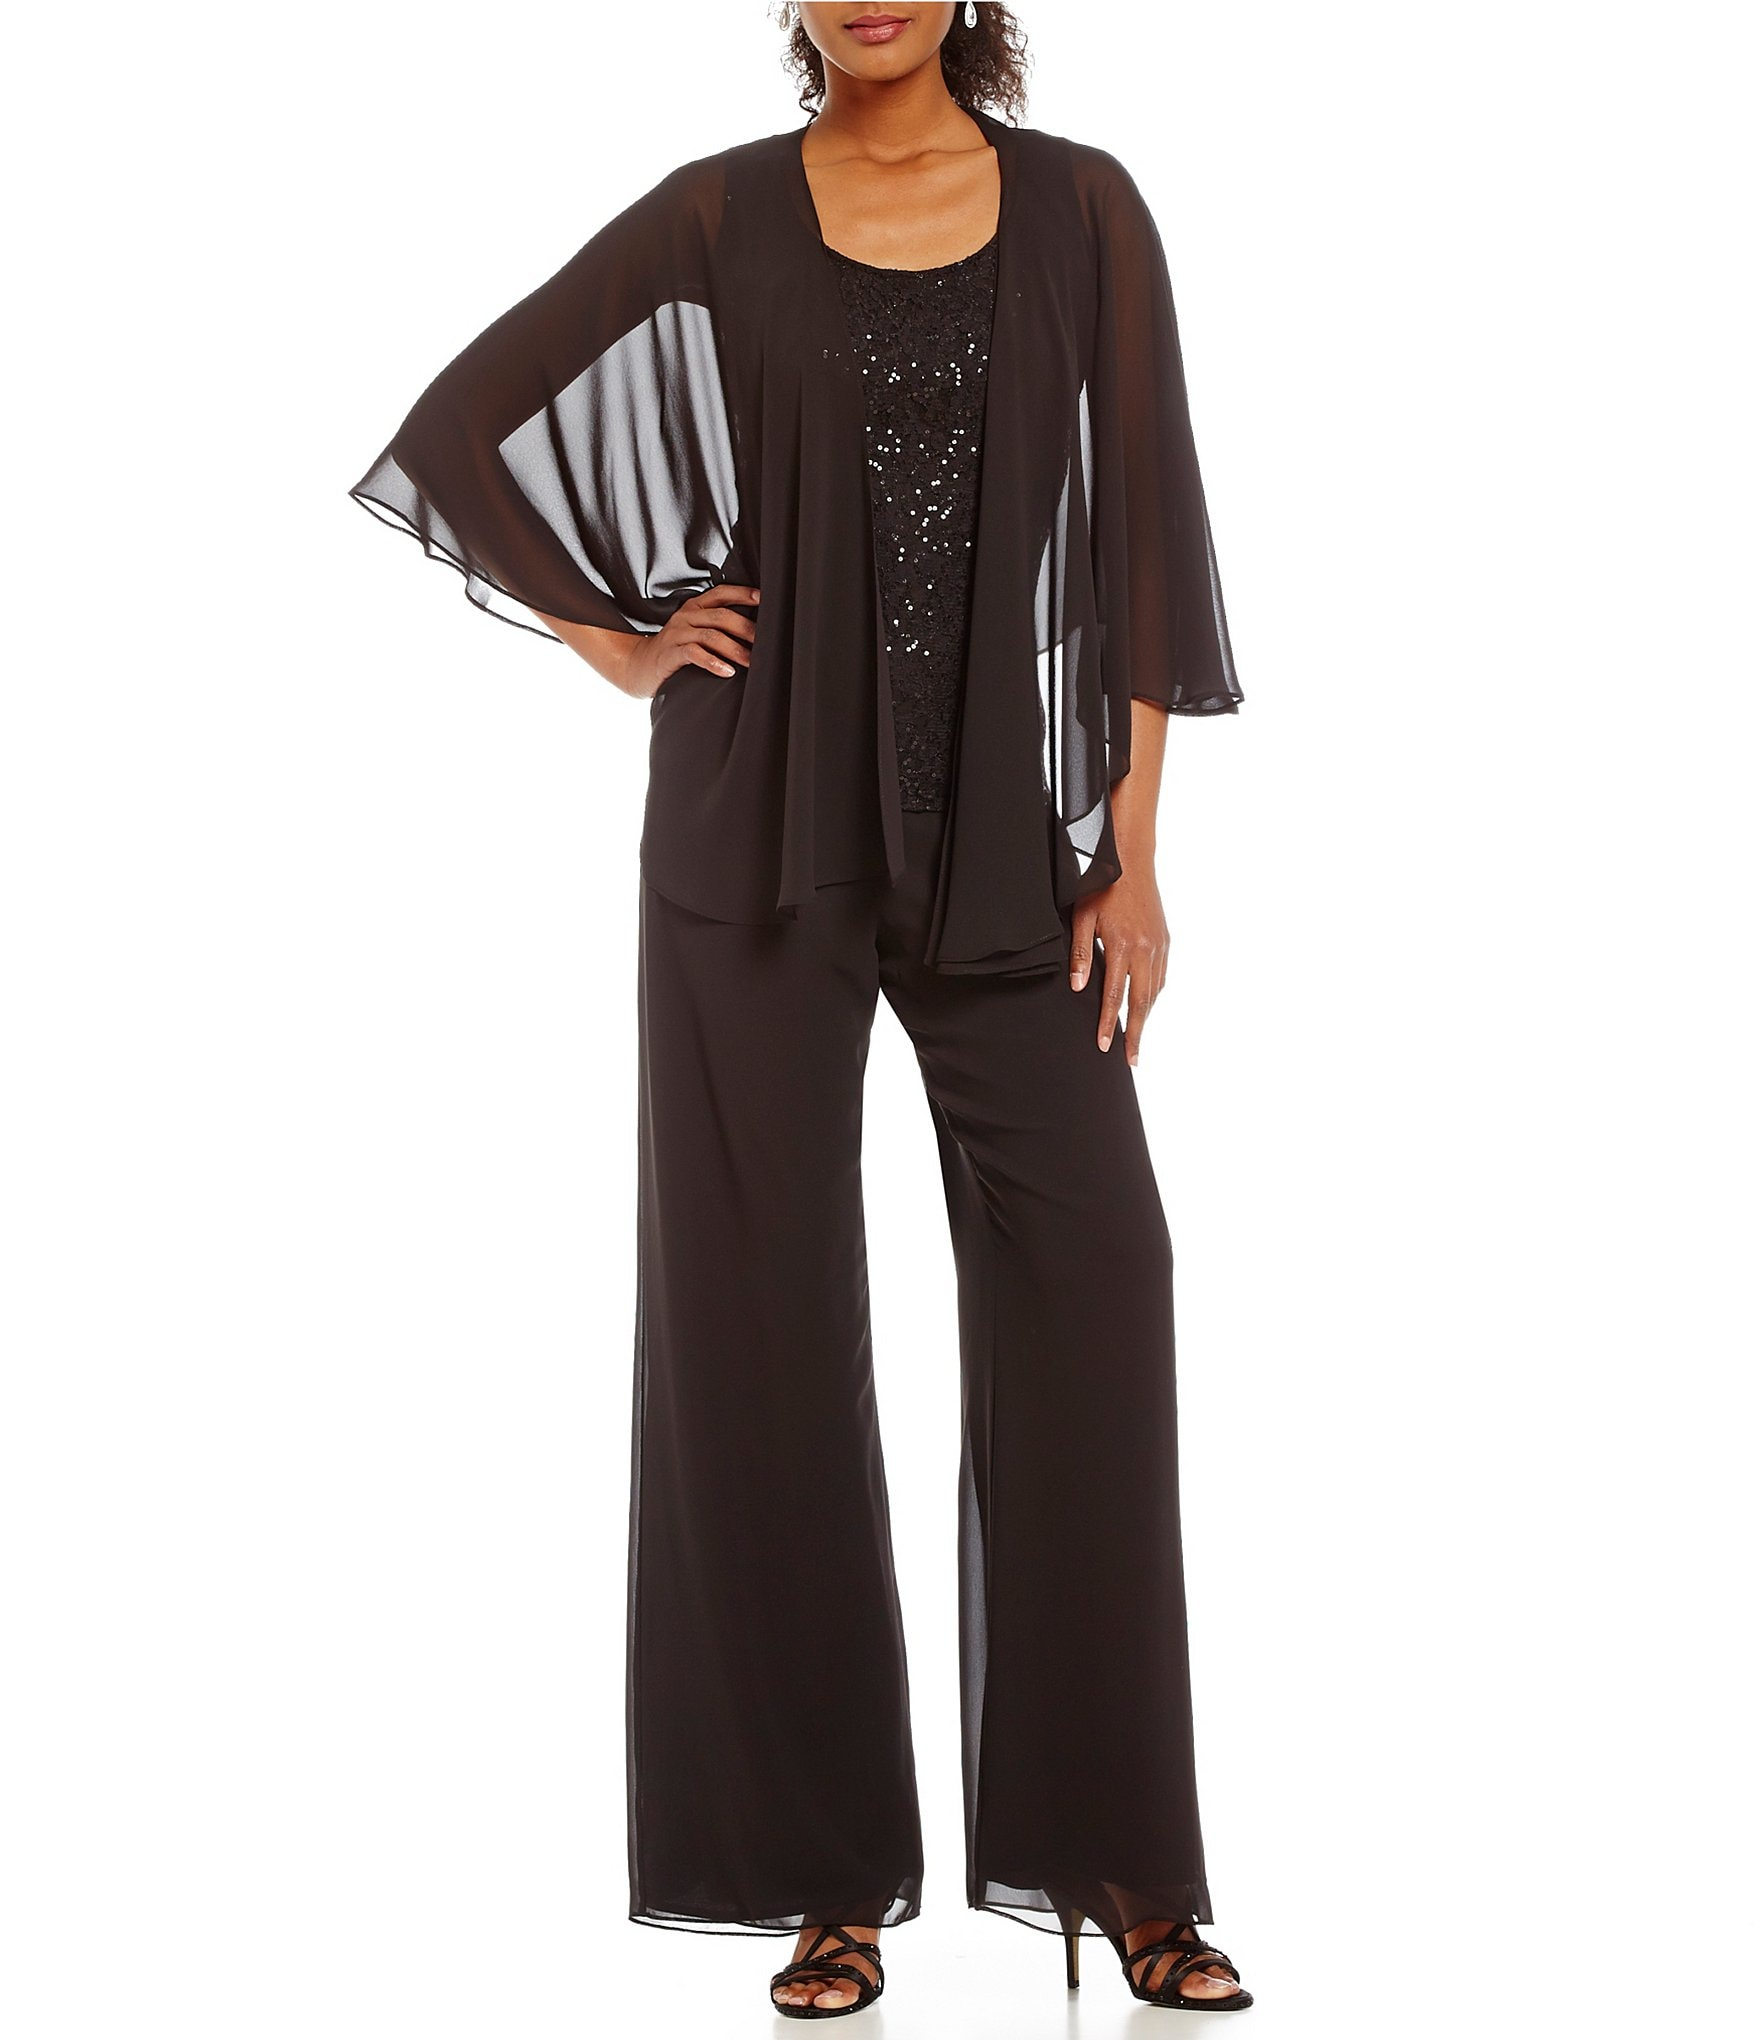 Mother of the Bride Pant Suits & Sets | Dillards